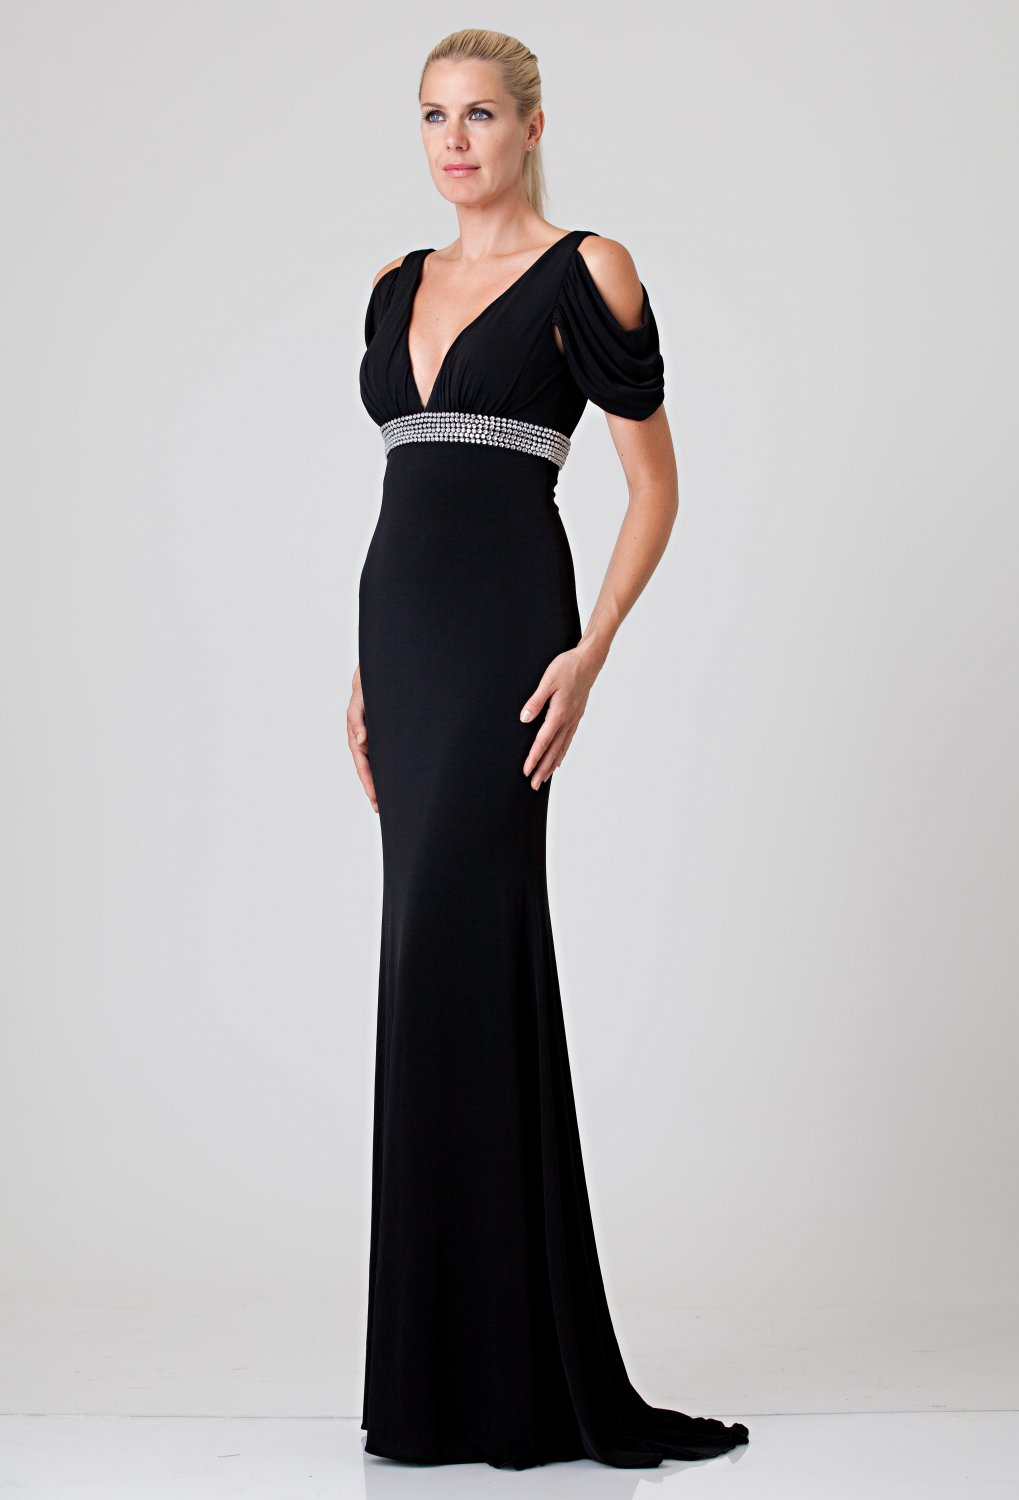 GA#862496 x - Black Evening Dresses, Short Sleeve Formal Gowns